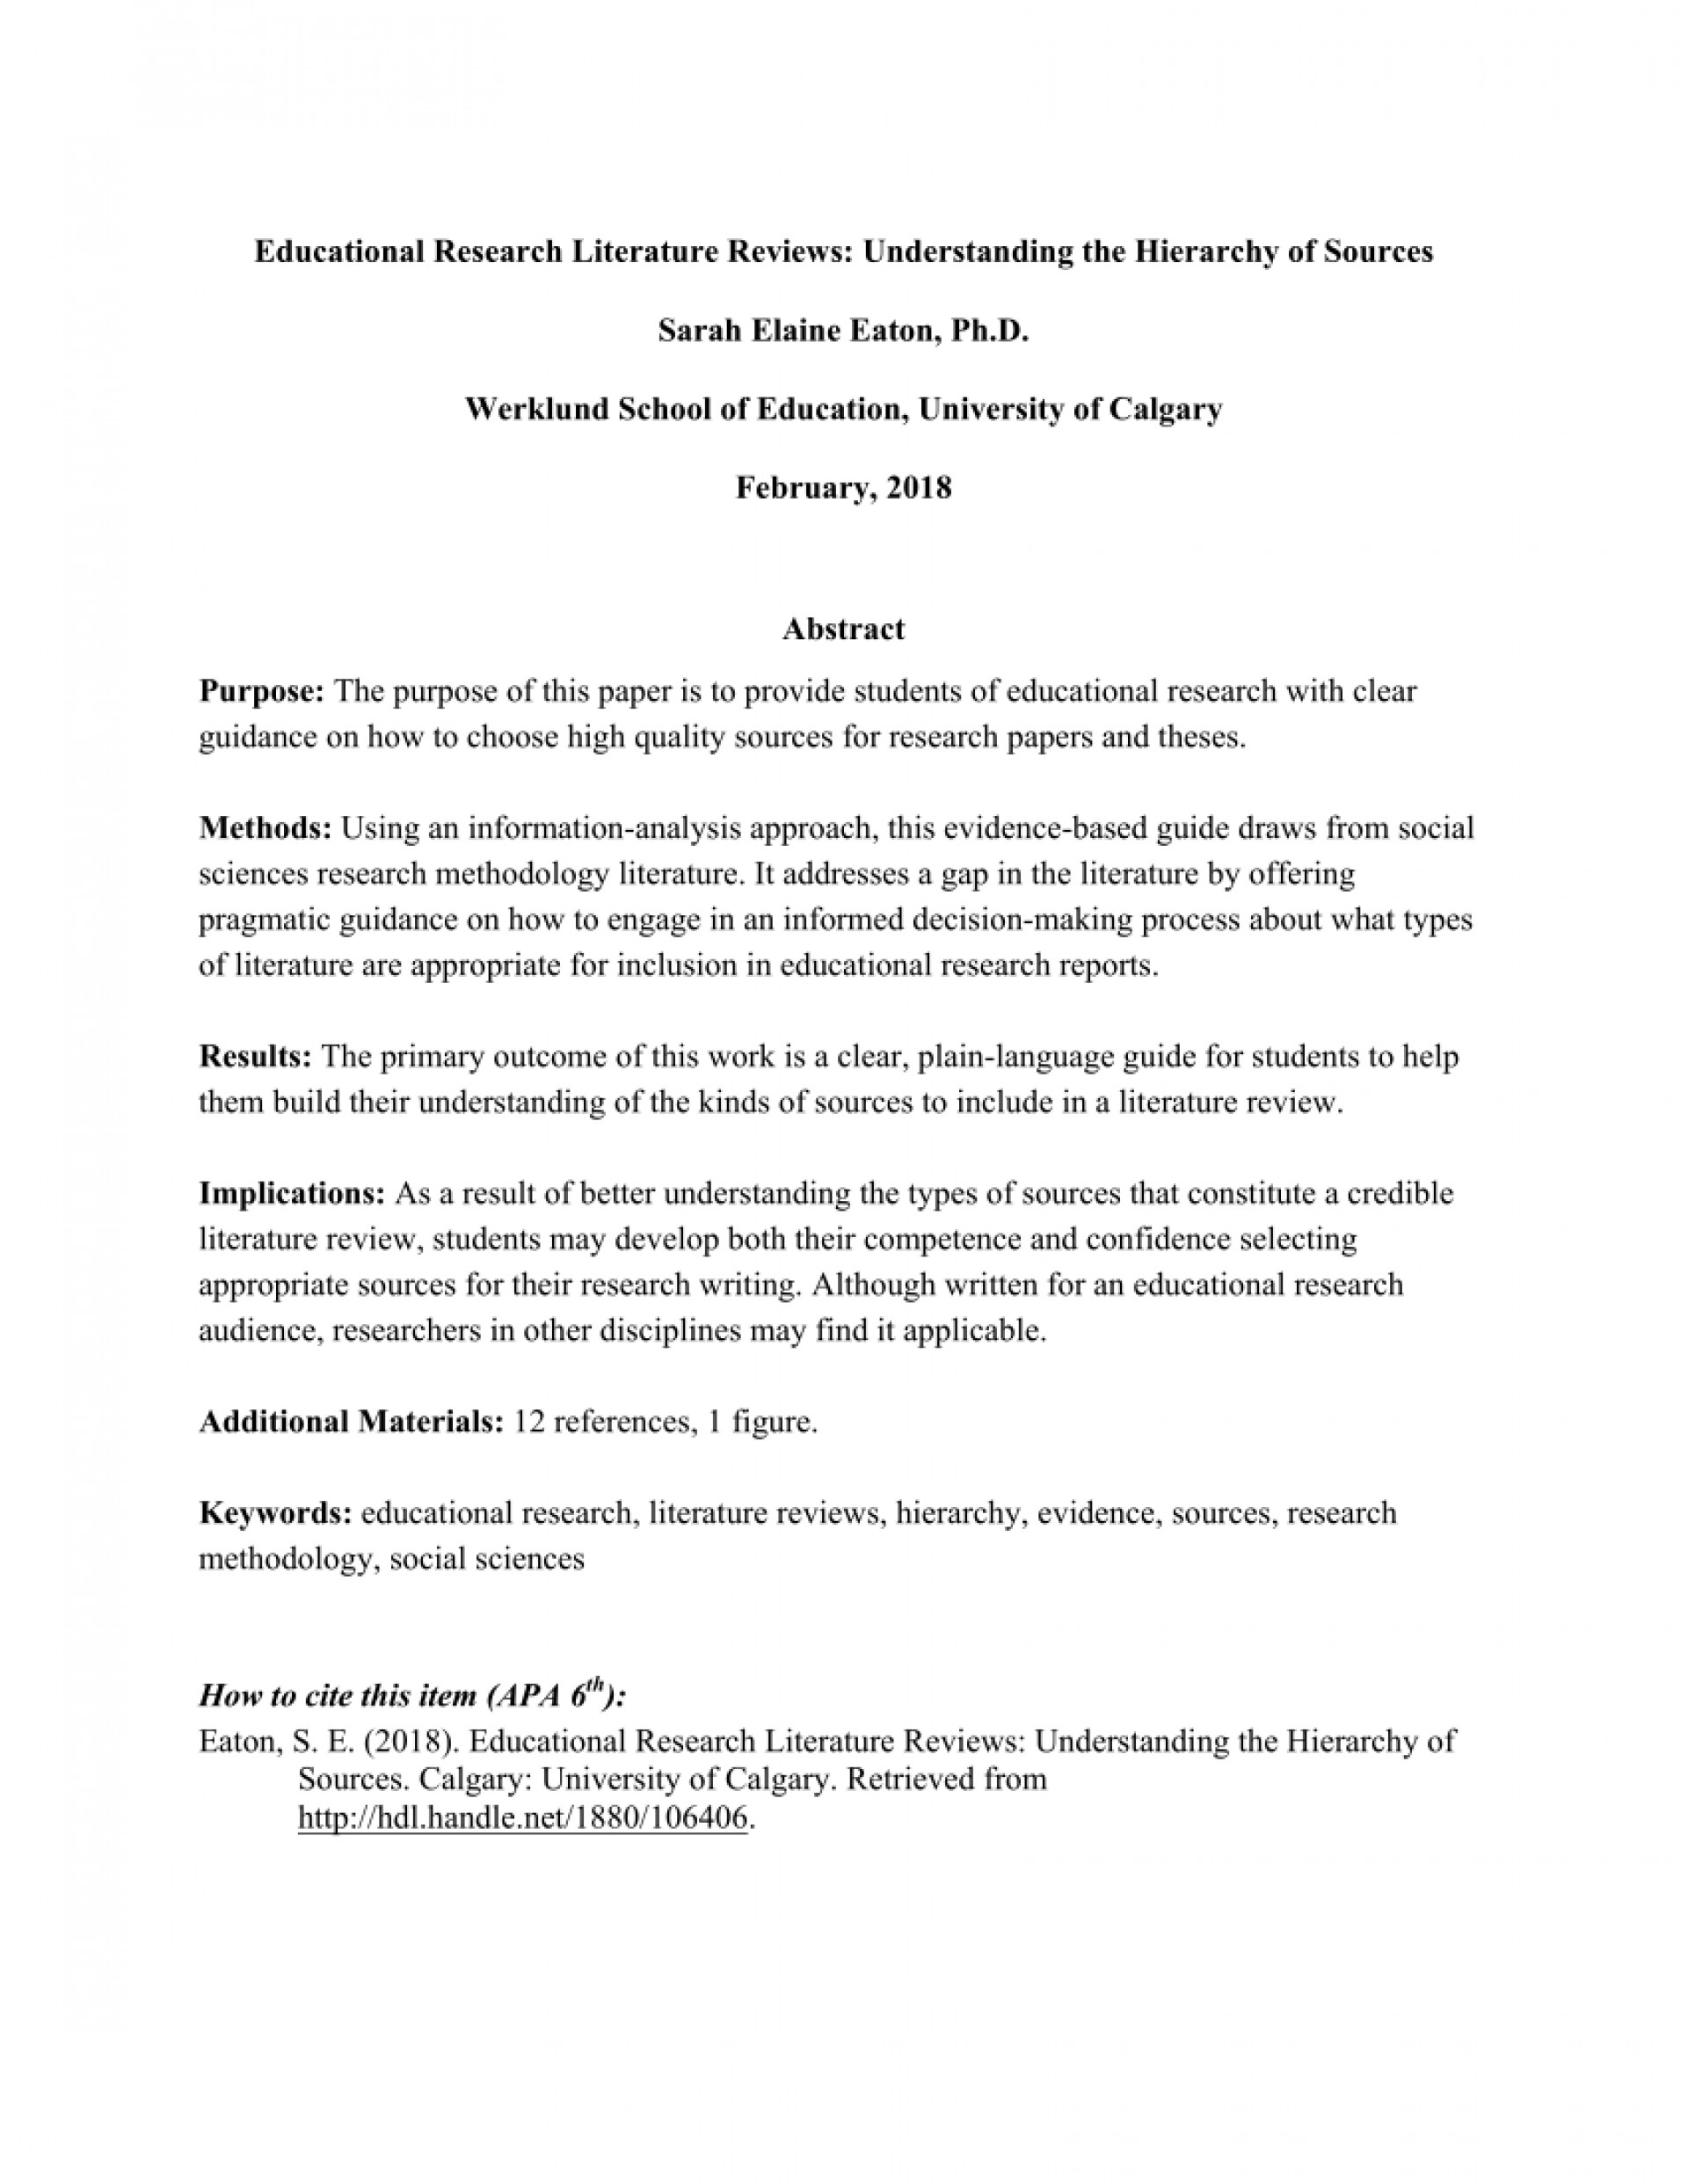 006 Example Of Review Literature In Research Paper Unusual Writing Related And Studies A Pdf 1920